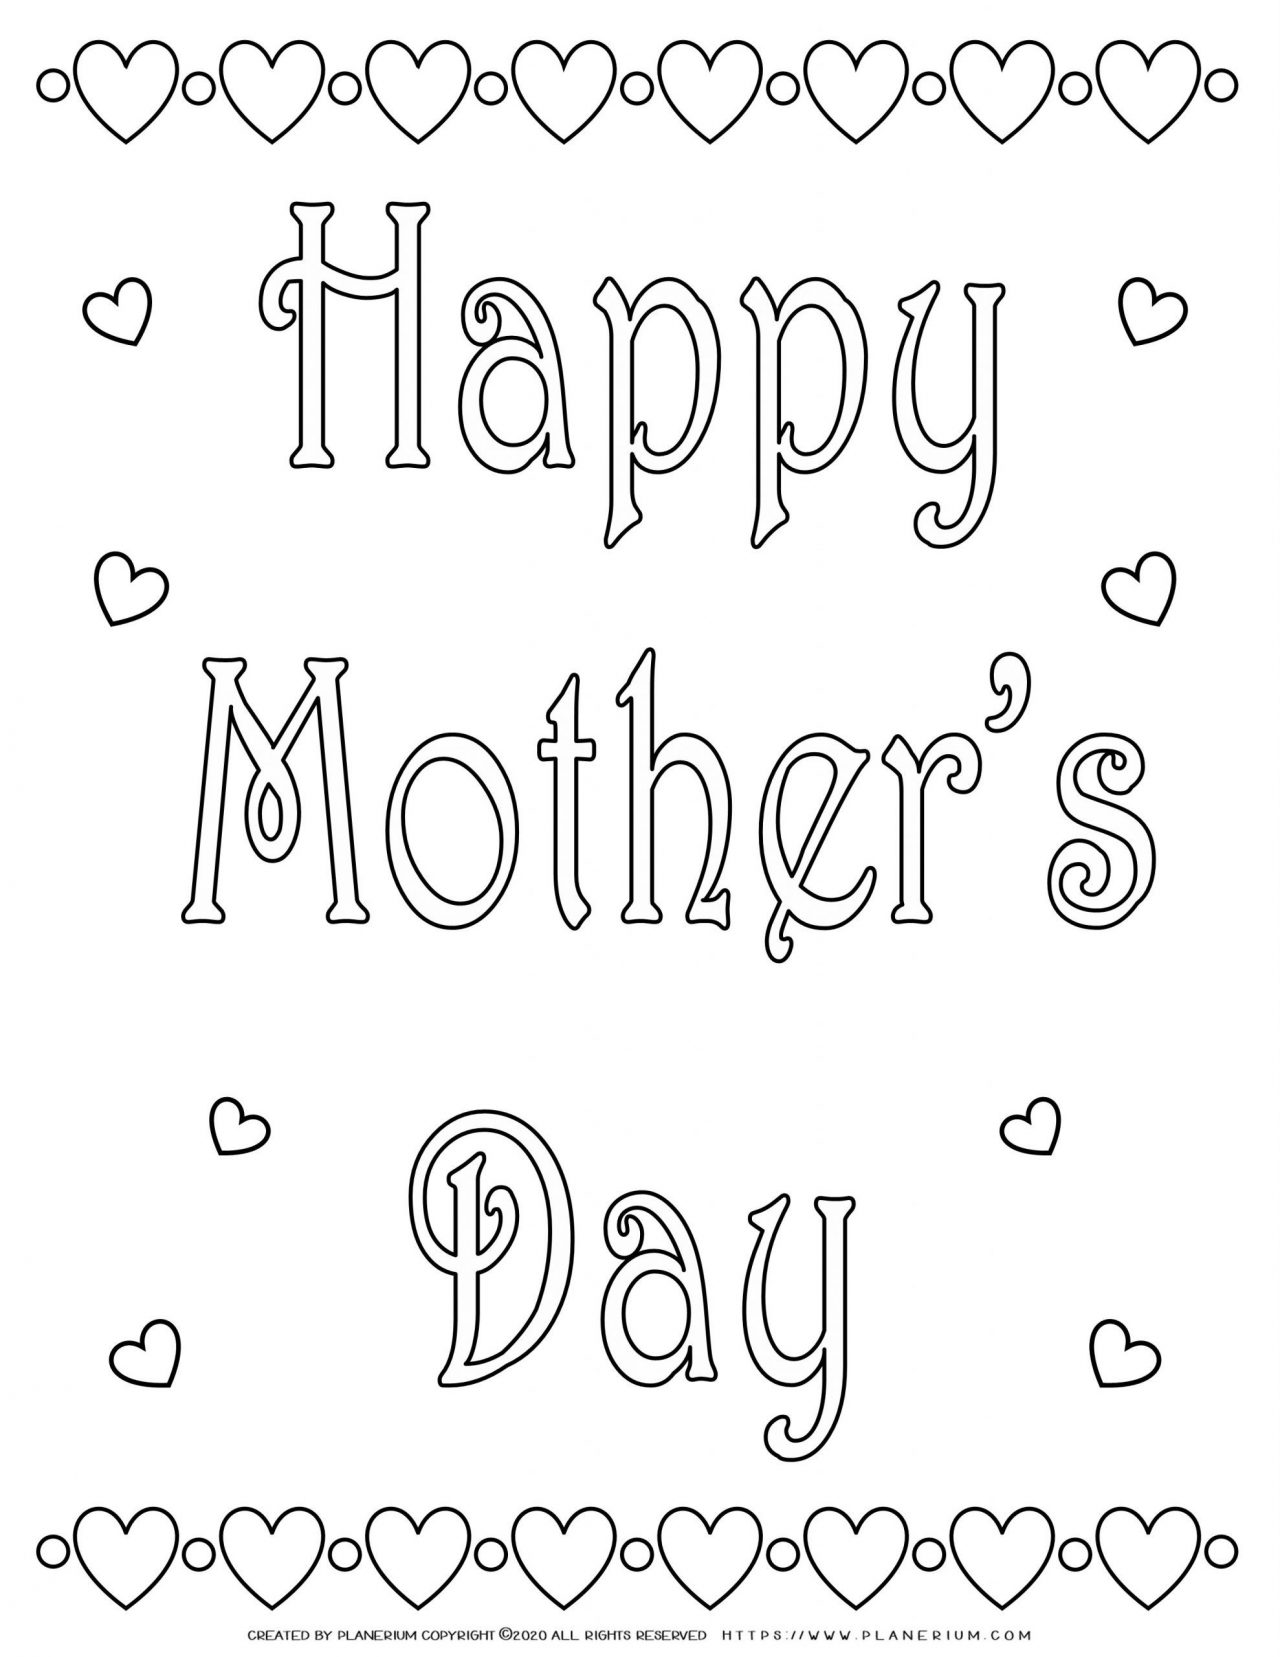 Mother's day - Coloring Page - Happy Mother's Day